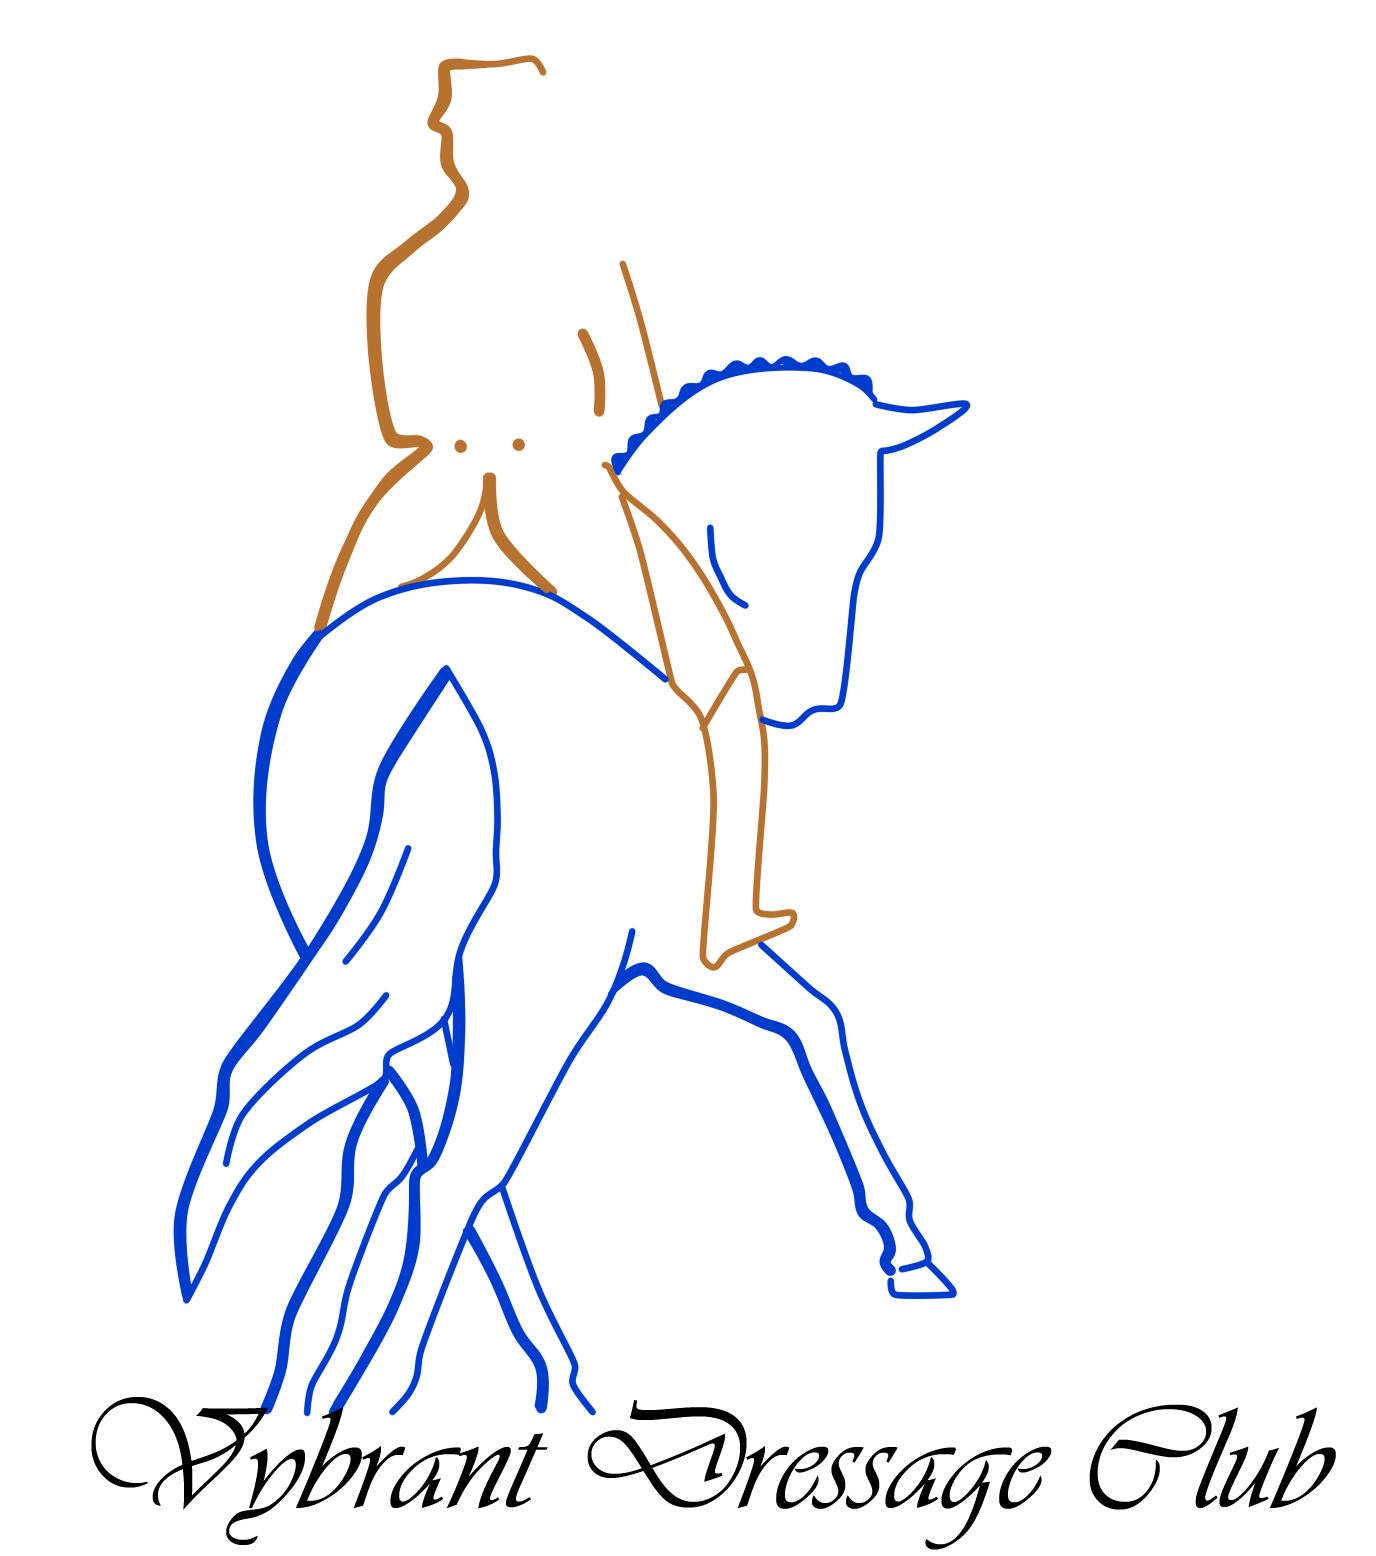 Copper and navy horse logo